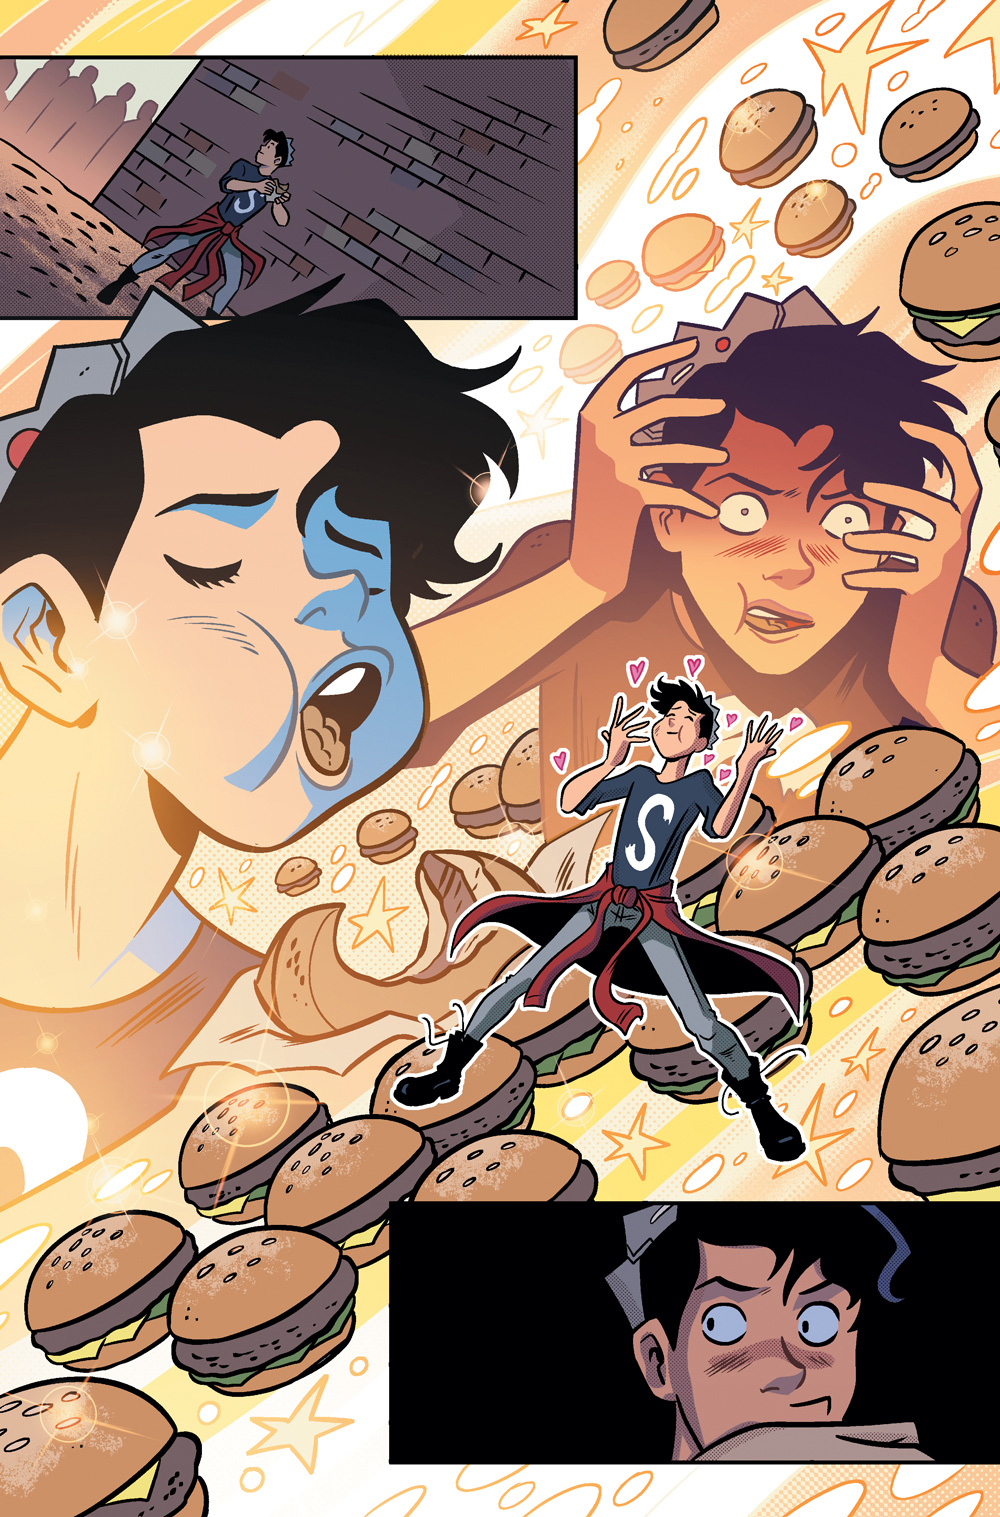 A hilarious moment of Jughead eating a hamburger in Jughead's Time Police #3.